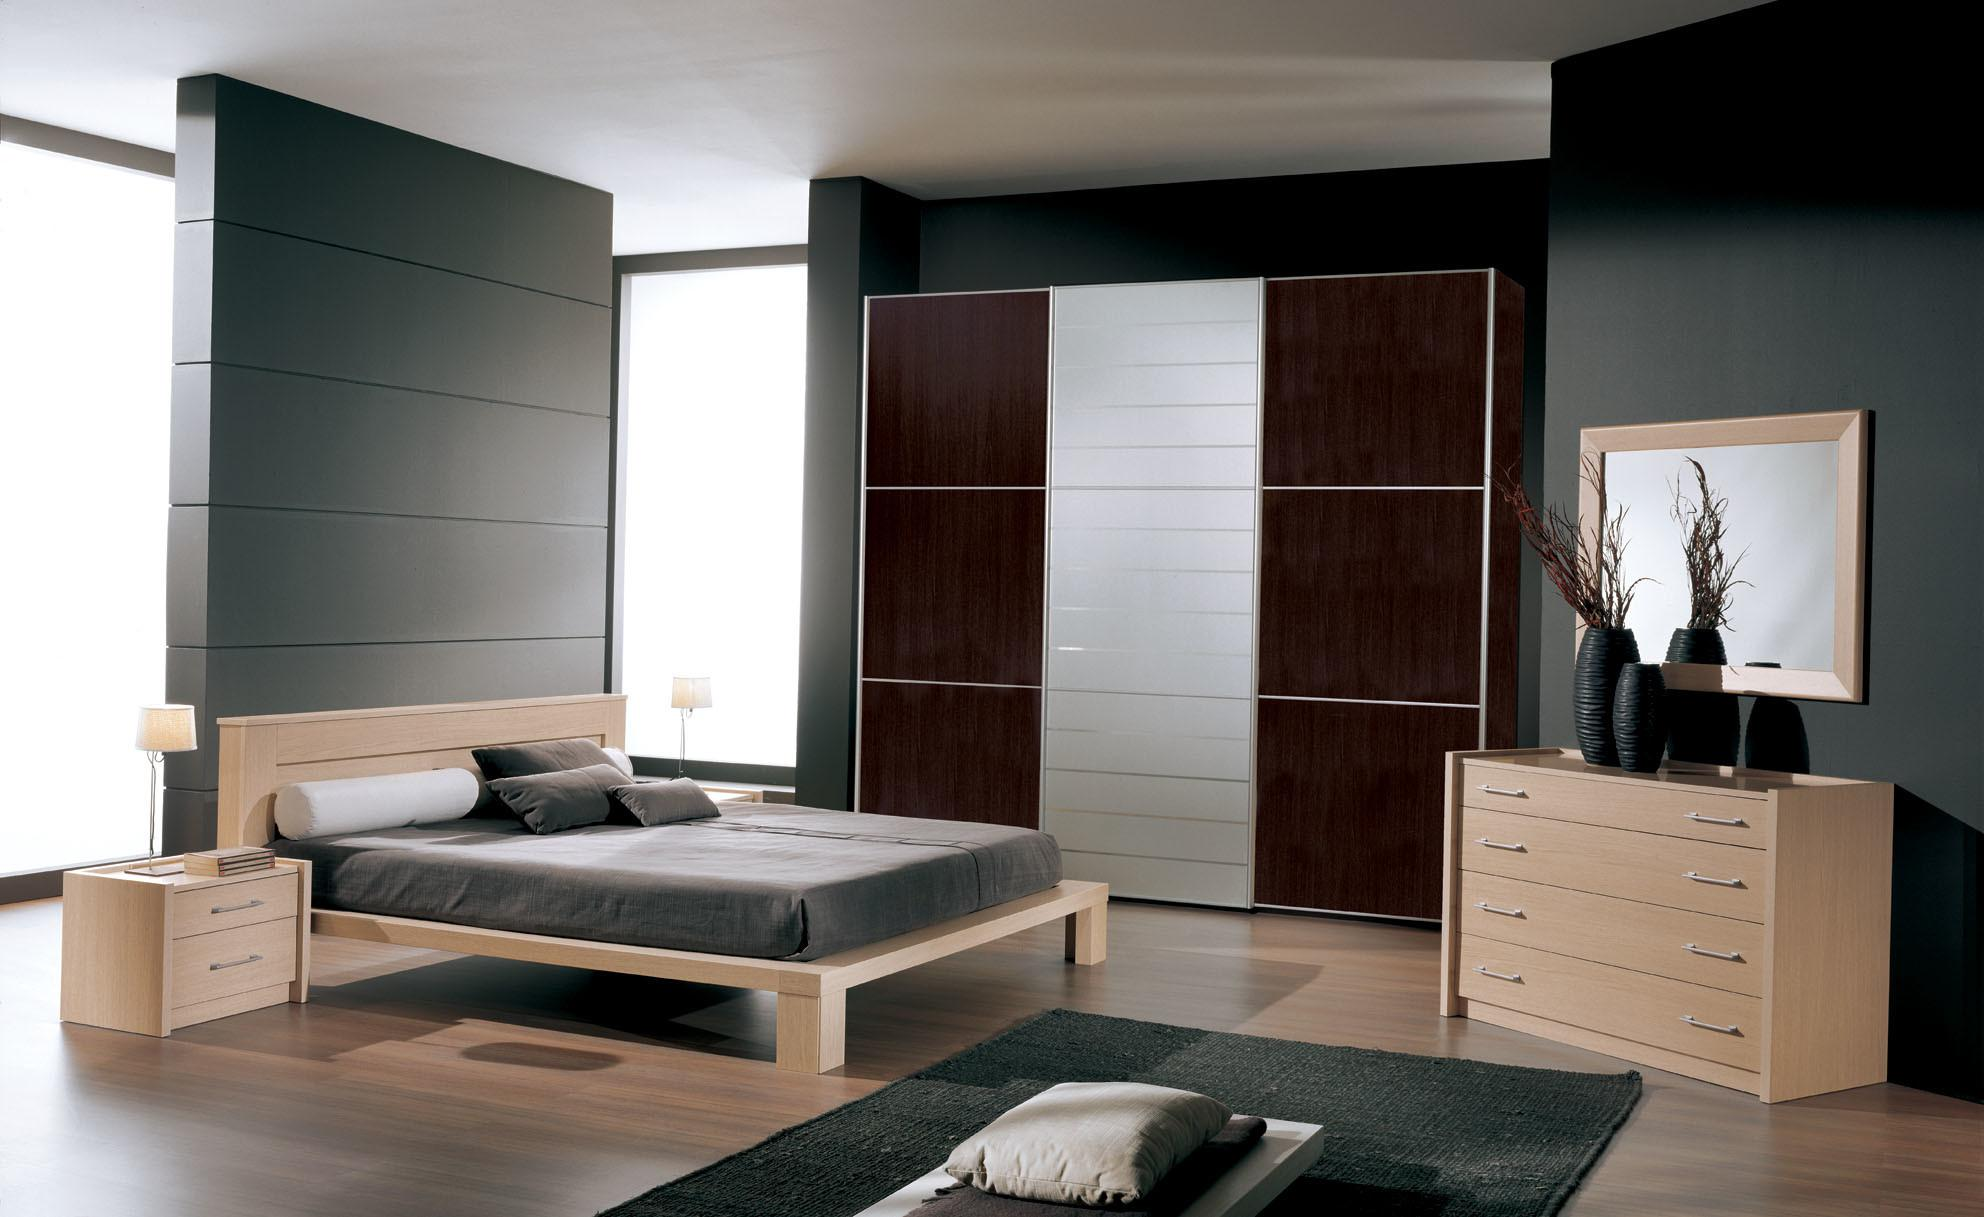 Bedroom Design Storage Ideas Small Bedrooms